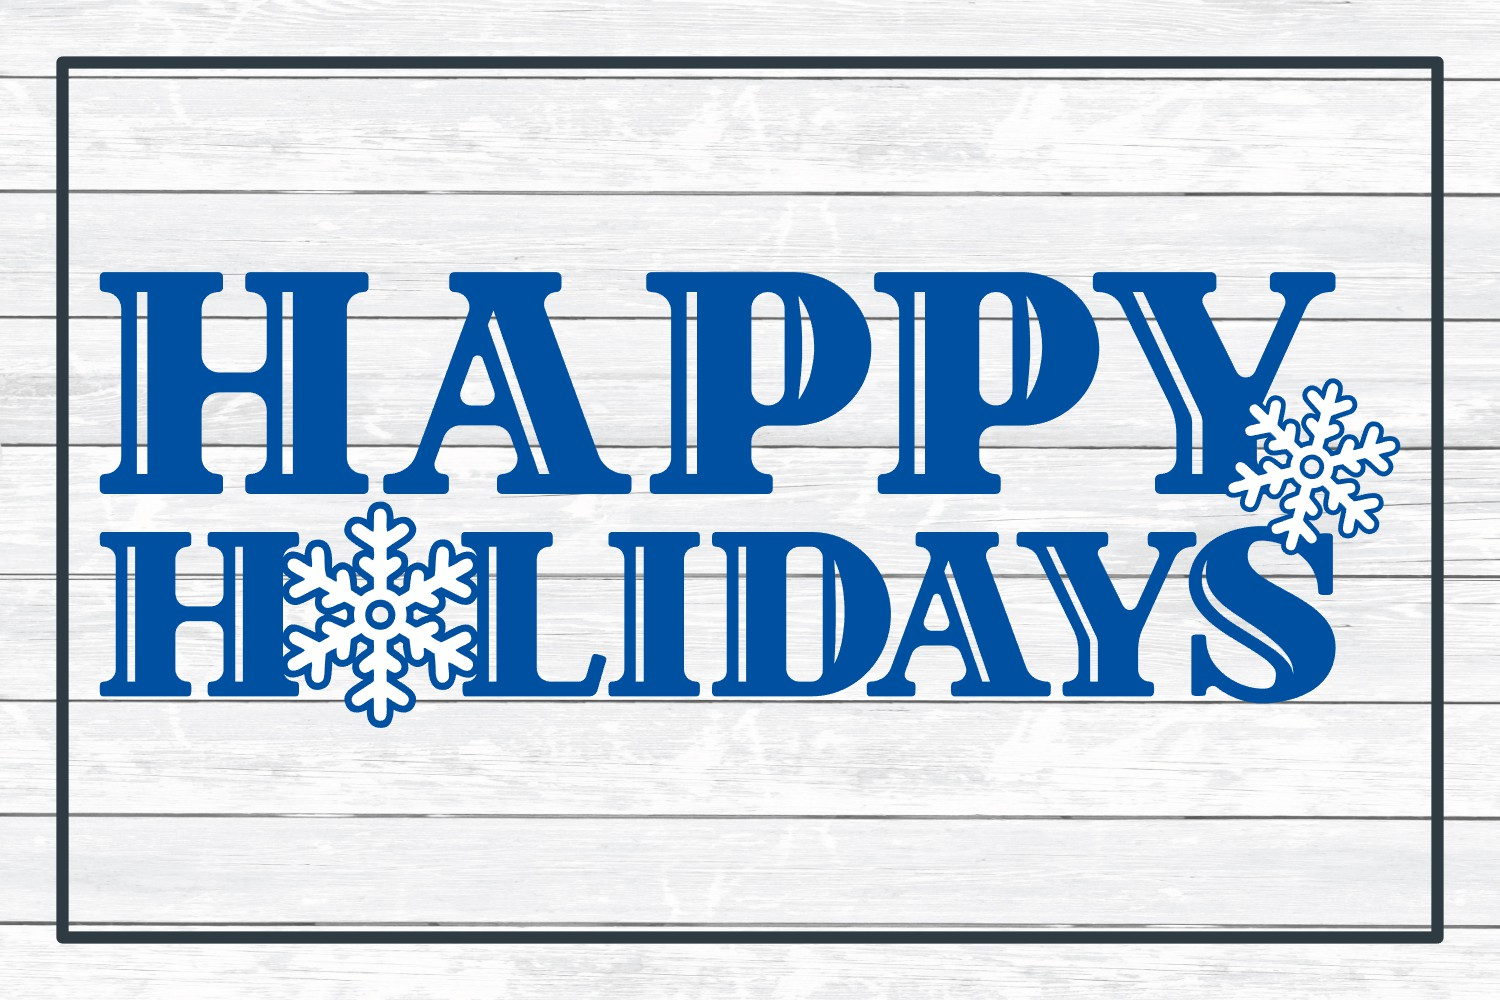 Happy Holidays, Christmas Winter Holiday SVG Cut File example image 3